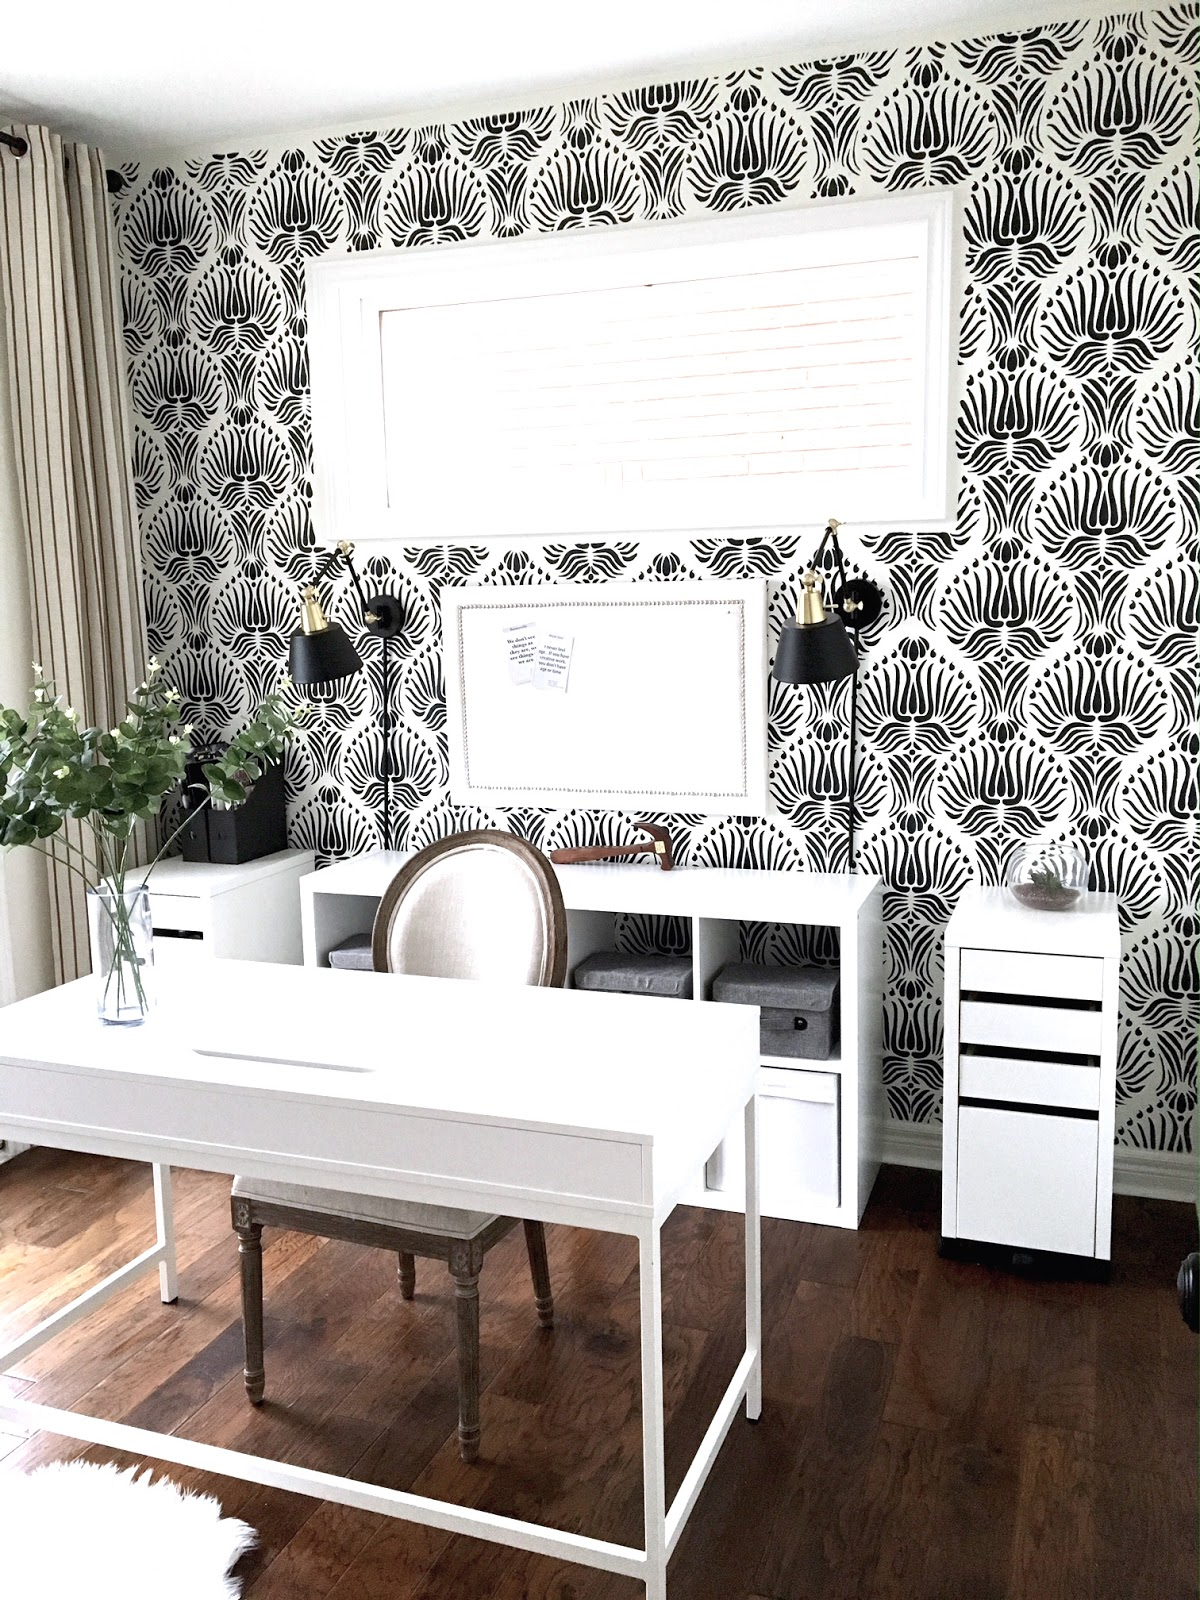 To Get Caught Up On My Progress So Far You Can Check Out Week 1 The Plan 2 Painting And 3 Stencil Tips 4 Furniture Makeover